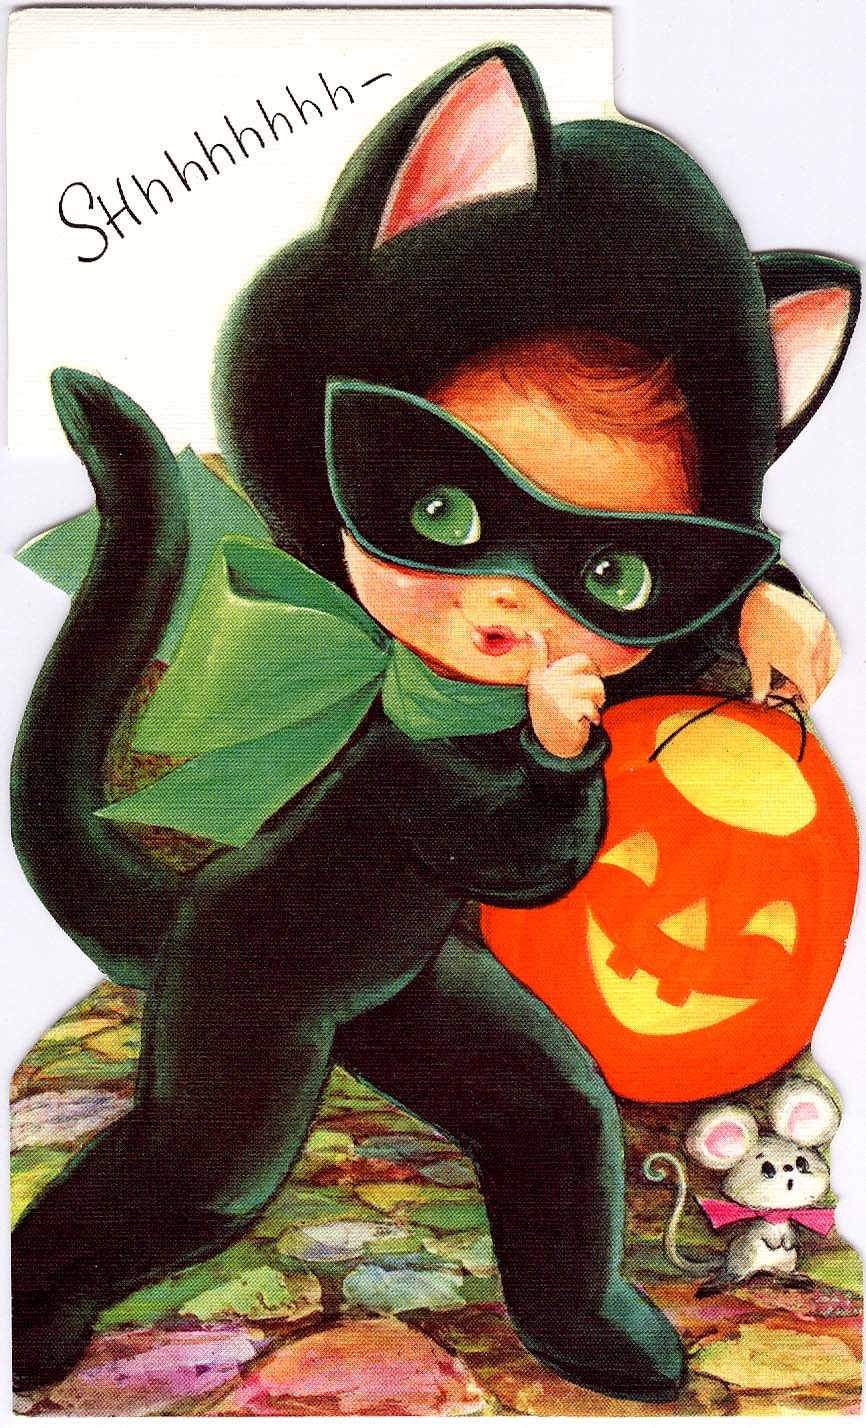 (vintage greeting card) Fall into Halloween! Pinterest